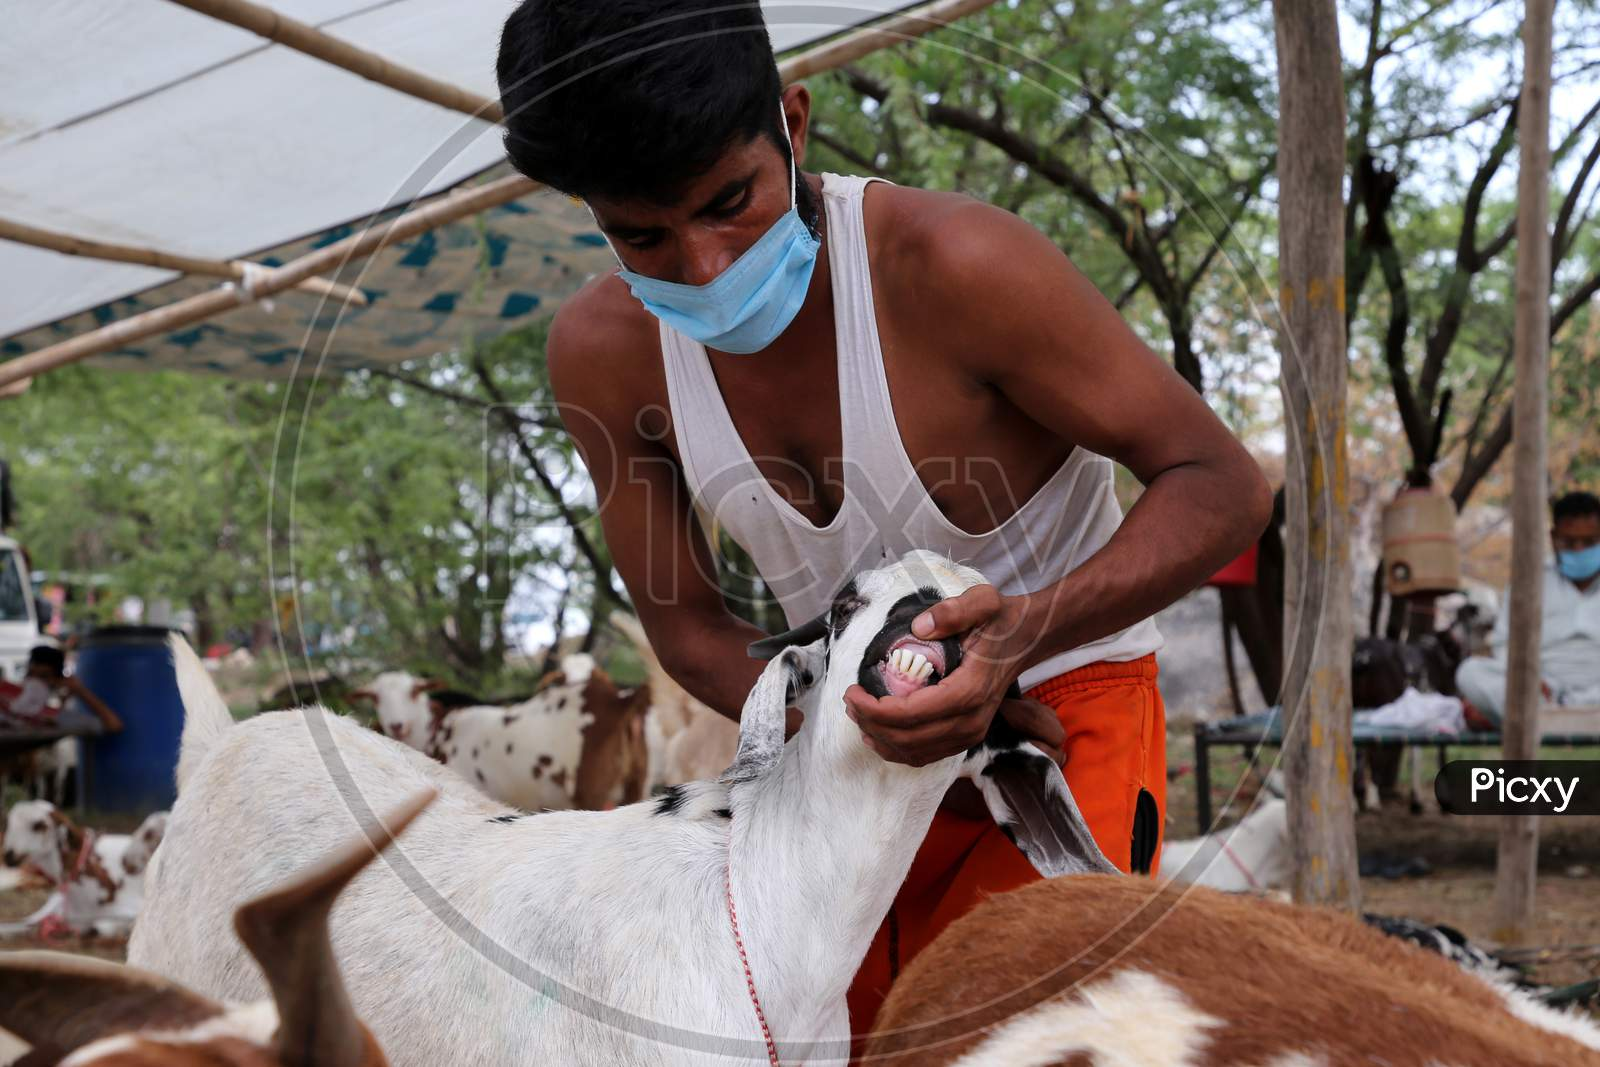 A Man Checks The Teeth Of A Goat To Determine Its Age At A Livestock Market Ahead Of The Muslim Festival Of Eid Al-Adha In Ajmer, India On July 23, 2020.